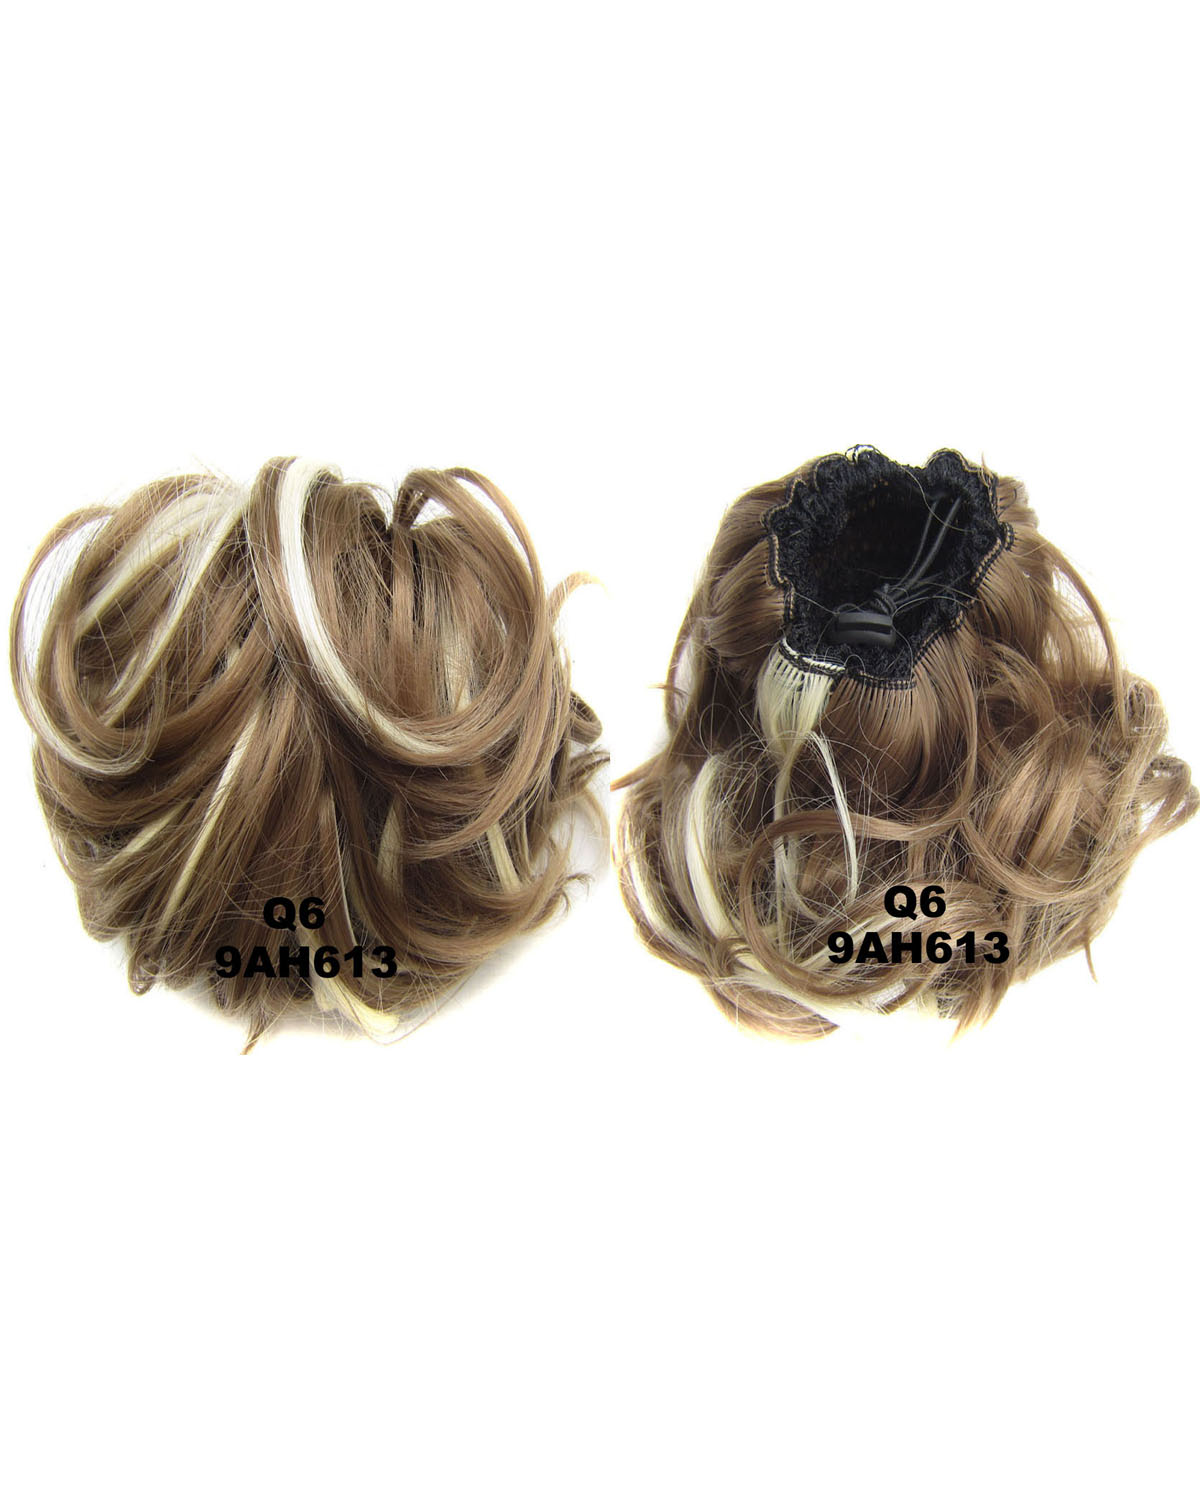 Ladies Great Quality Curly and Short Hair Buns Drawstring Synthetic Hair Extension Bride Scrunchies 9AH613